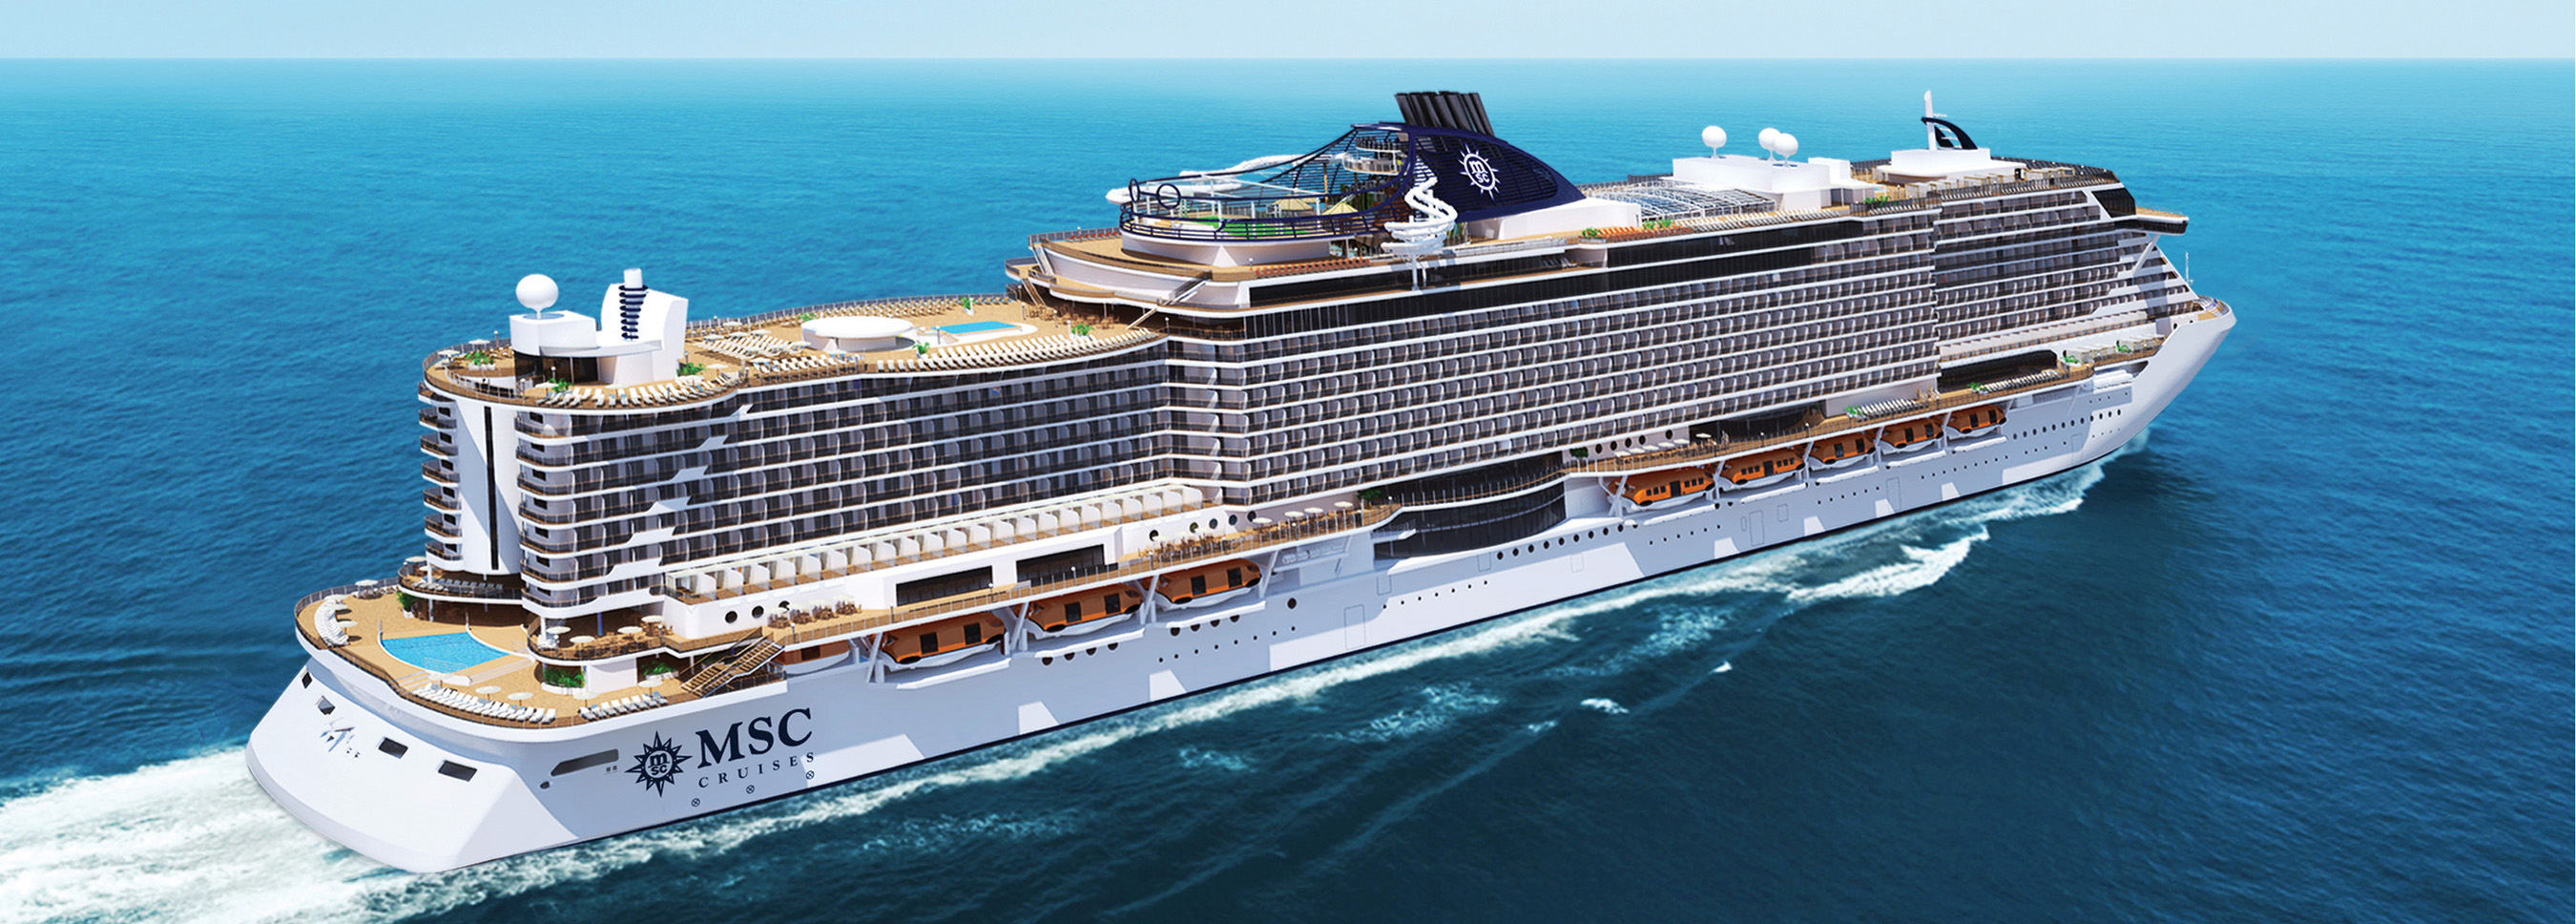 MSC CRUISES REVEALS FIRST DETAILS OF NEW ULTRAMODERN SEASIDE - First cruise ship in the world